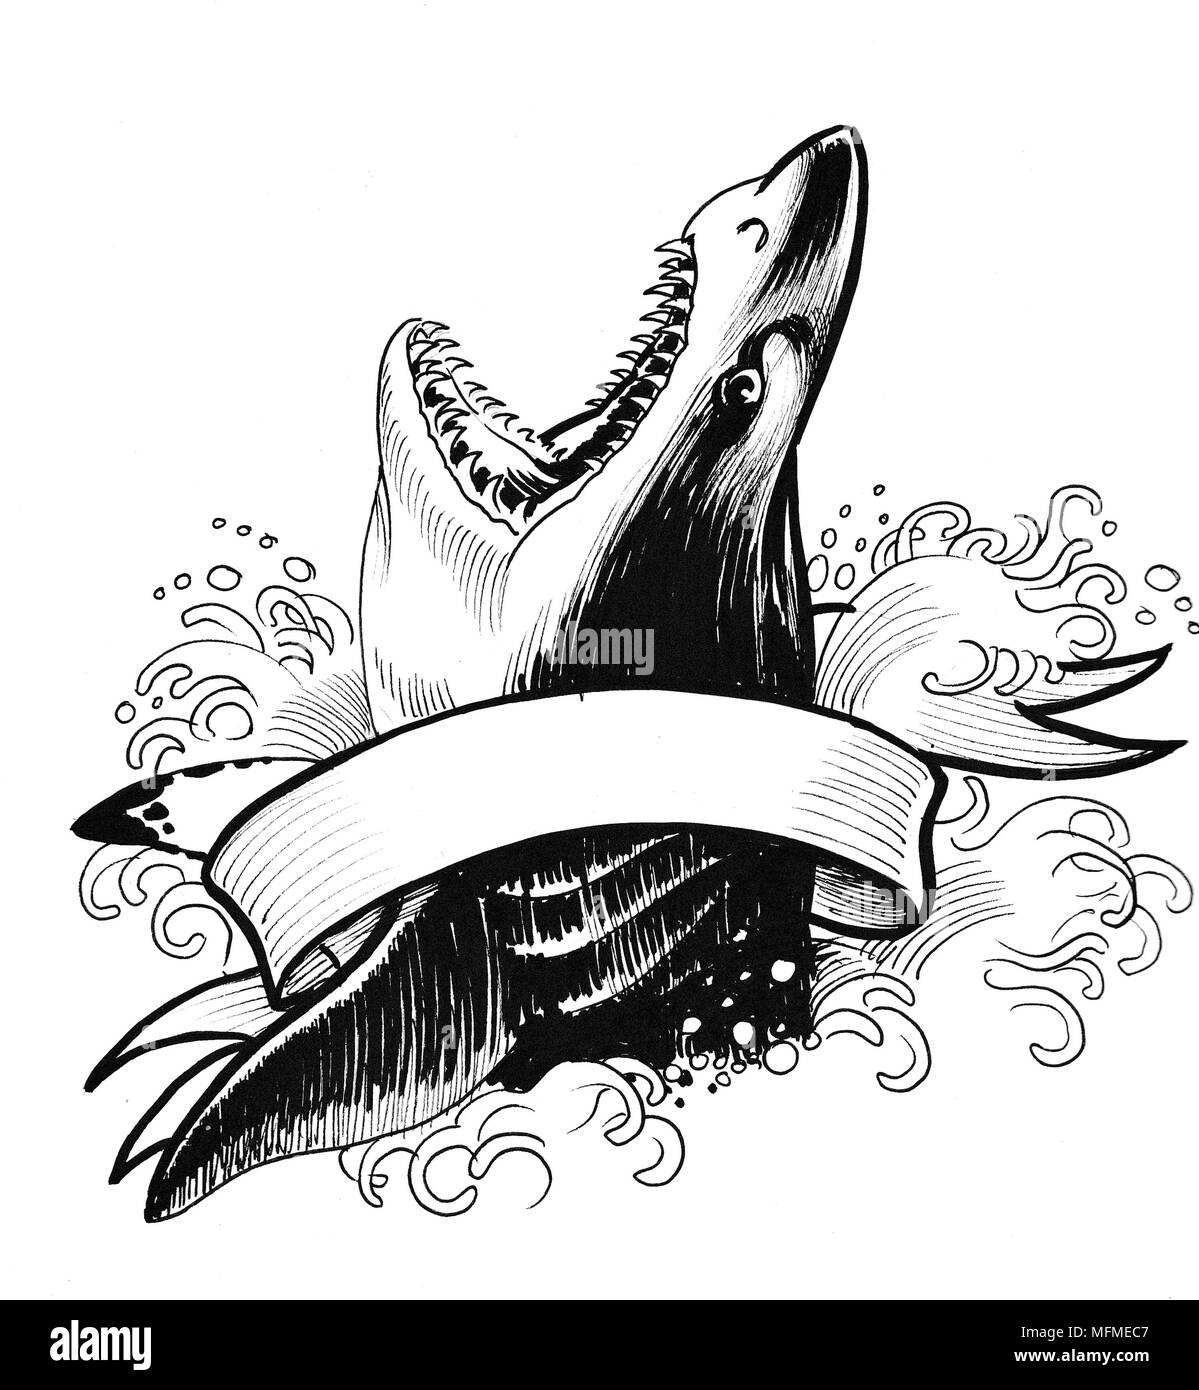 Ink black and white drawing of a shark with an open mouth, and waves ... for shark drawing open mouth  75tgx